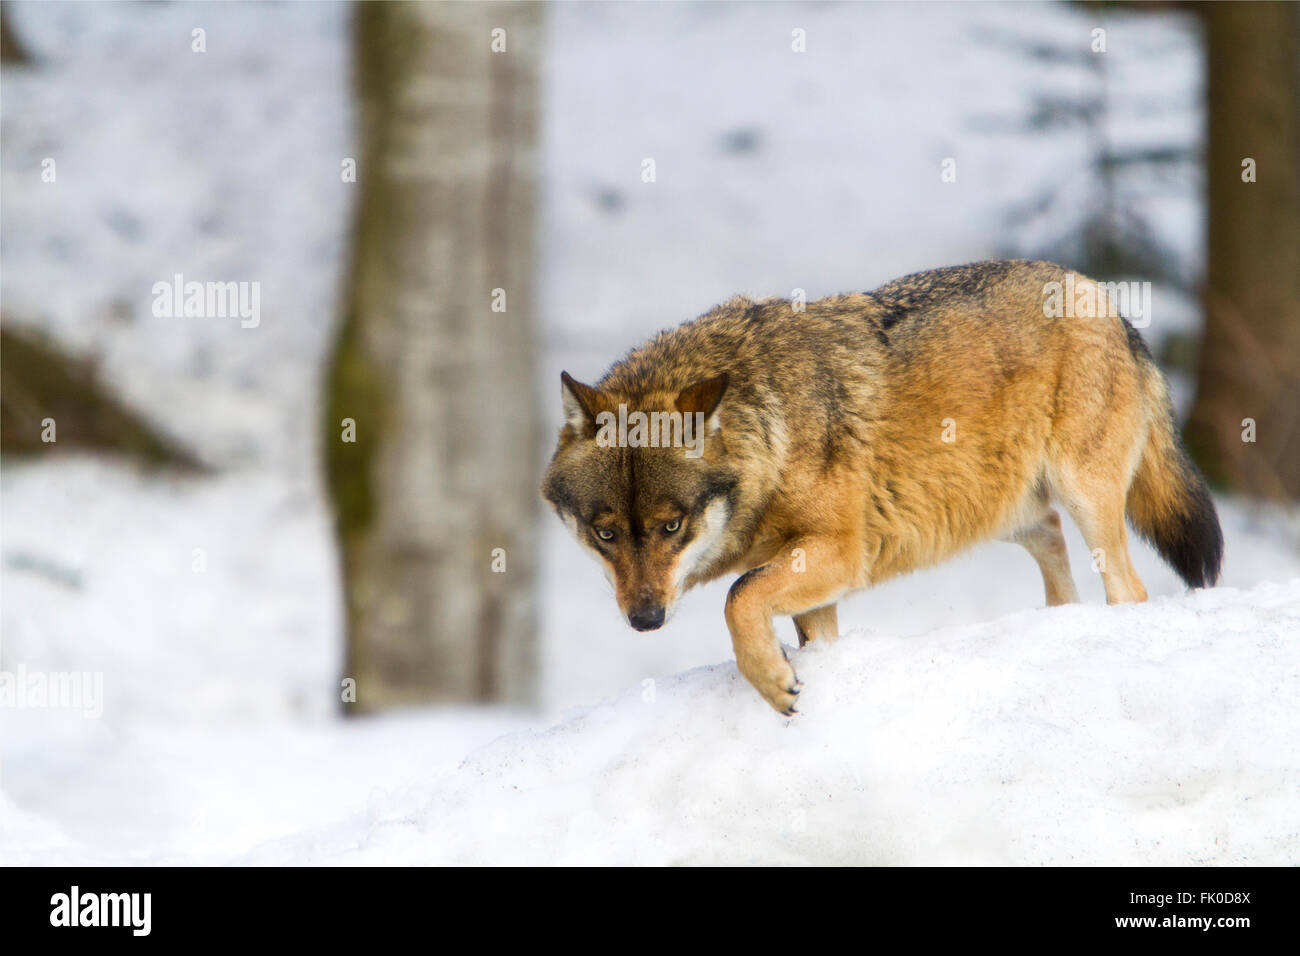 European grey wolf (Canis lupus)walking in a snowly forest in winter time - Stock Image